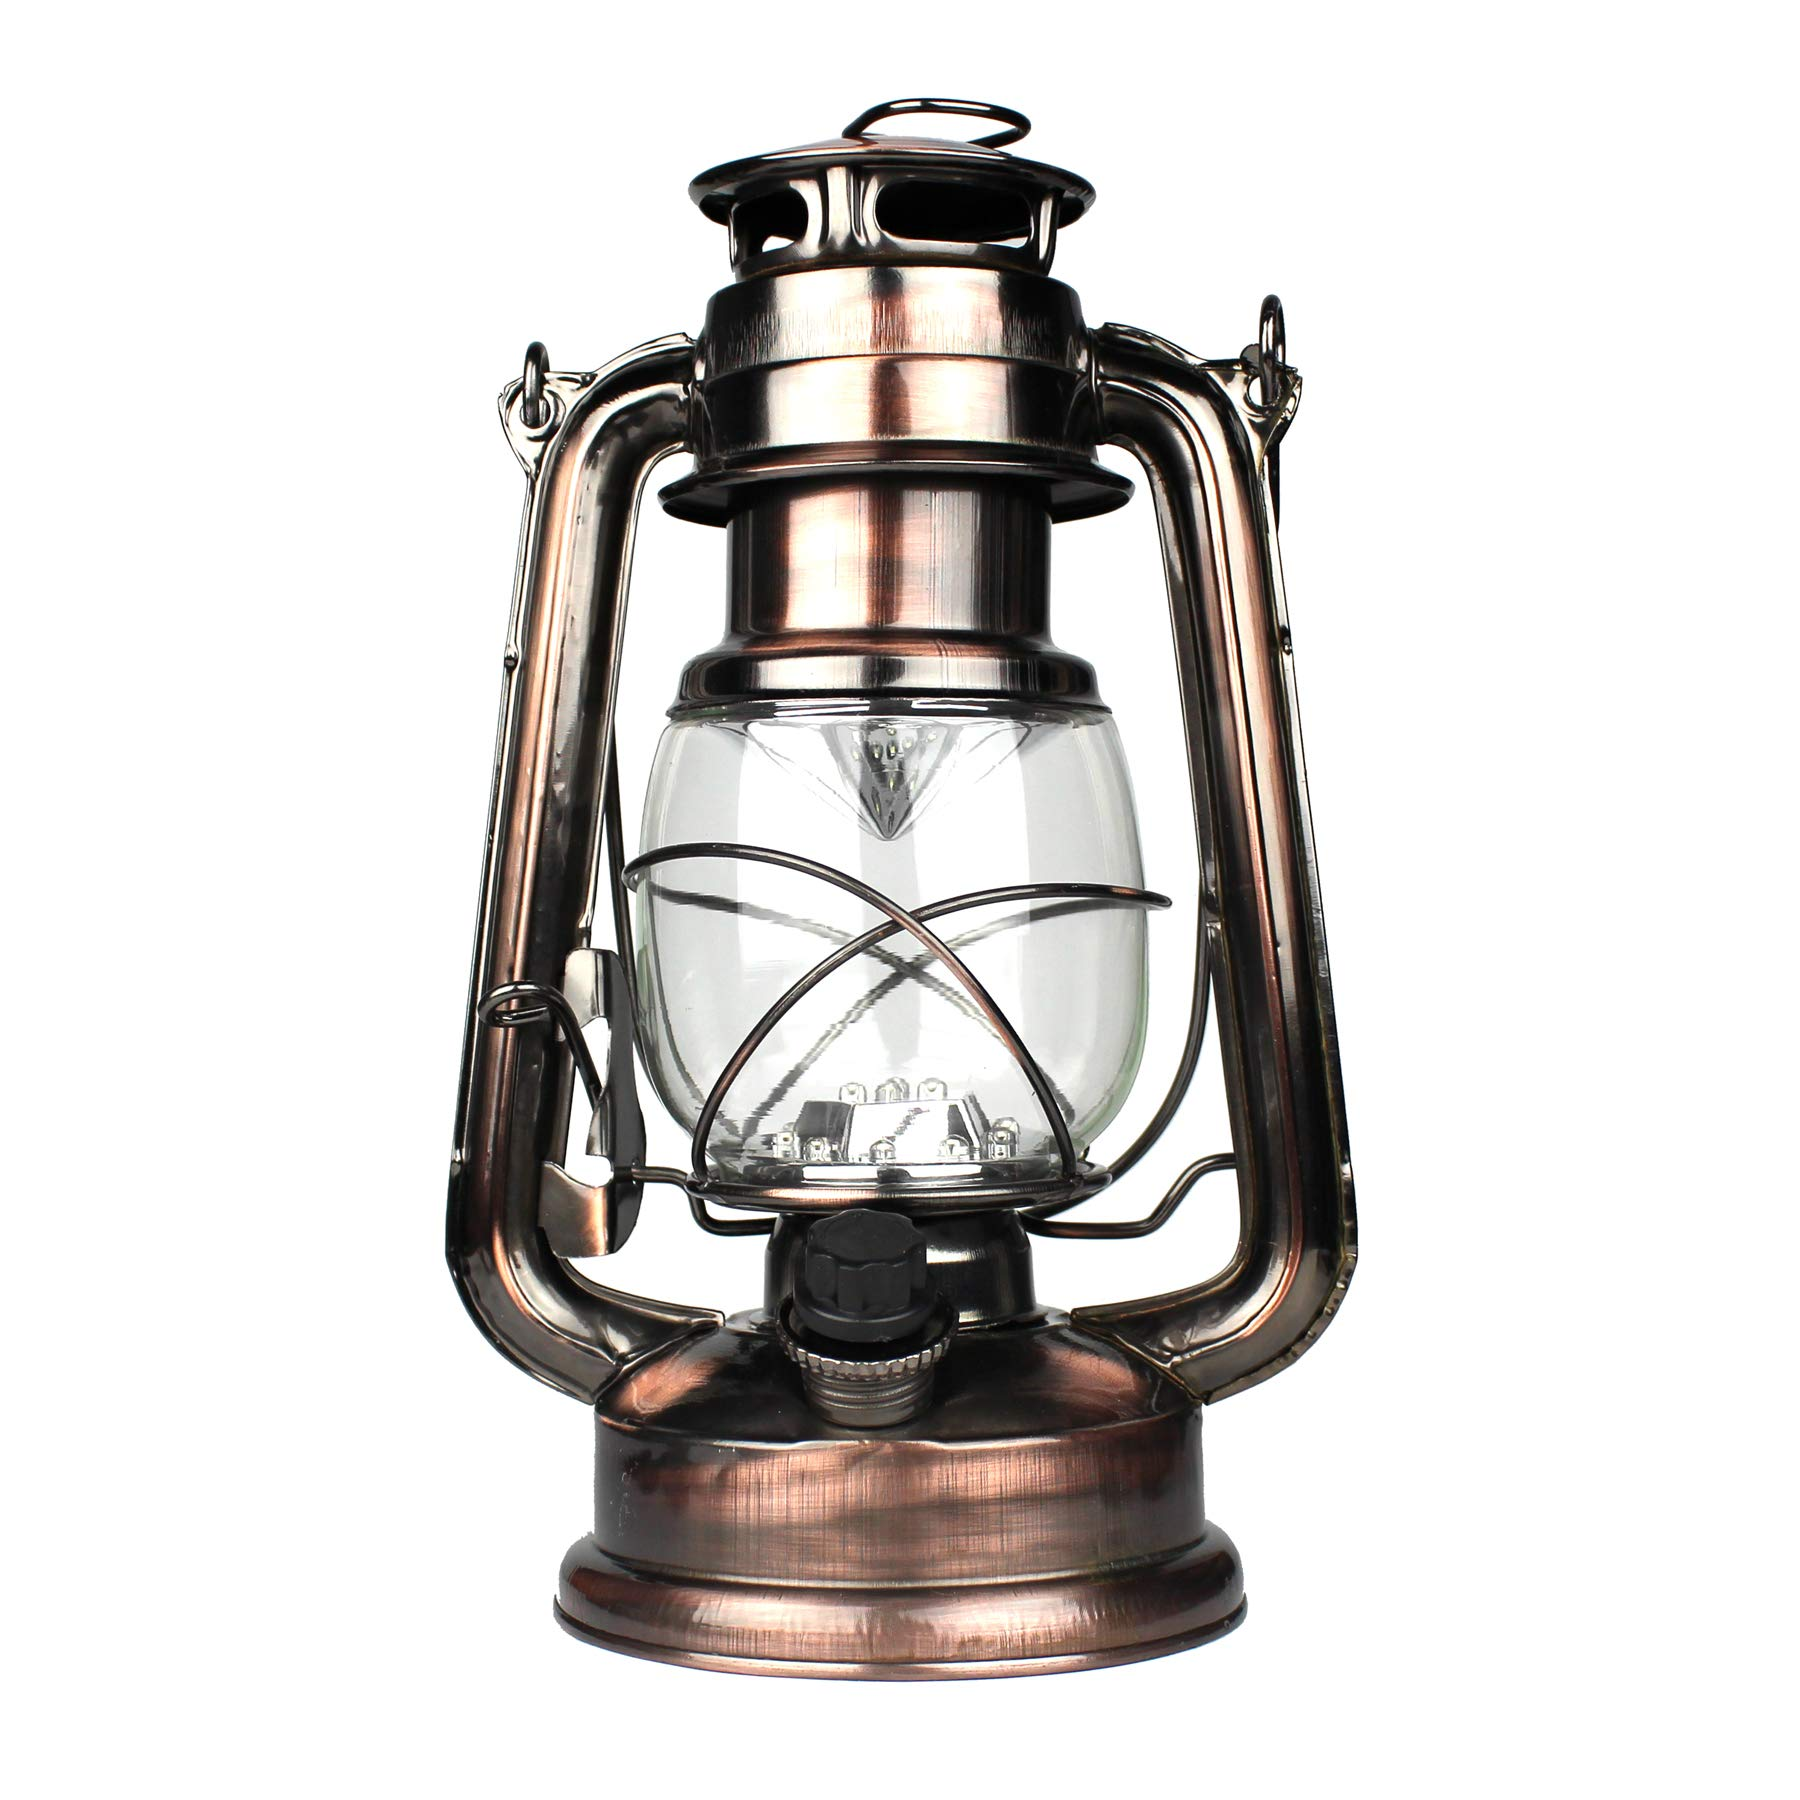 WeatherRITE LED Battery-Operated Old-Fashioned Rustic-Lantern Antique-Decor 5572 (4-Pack)